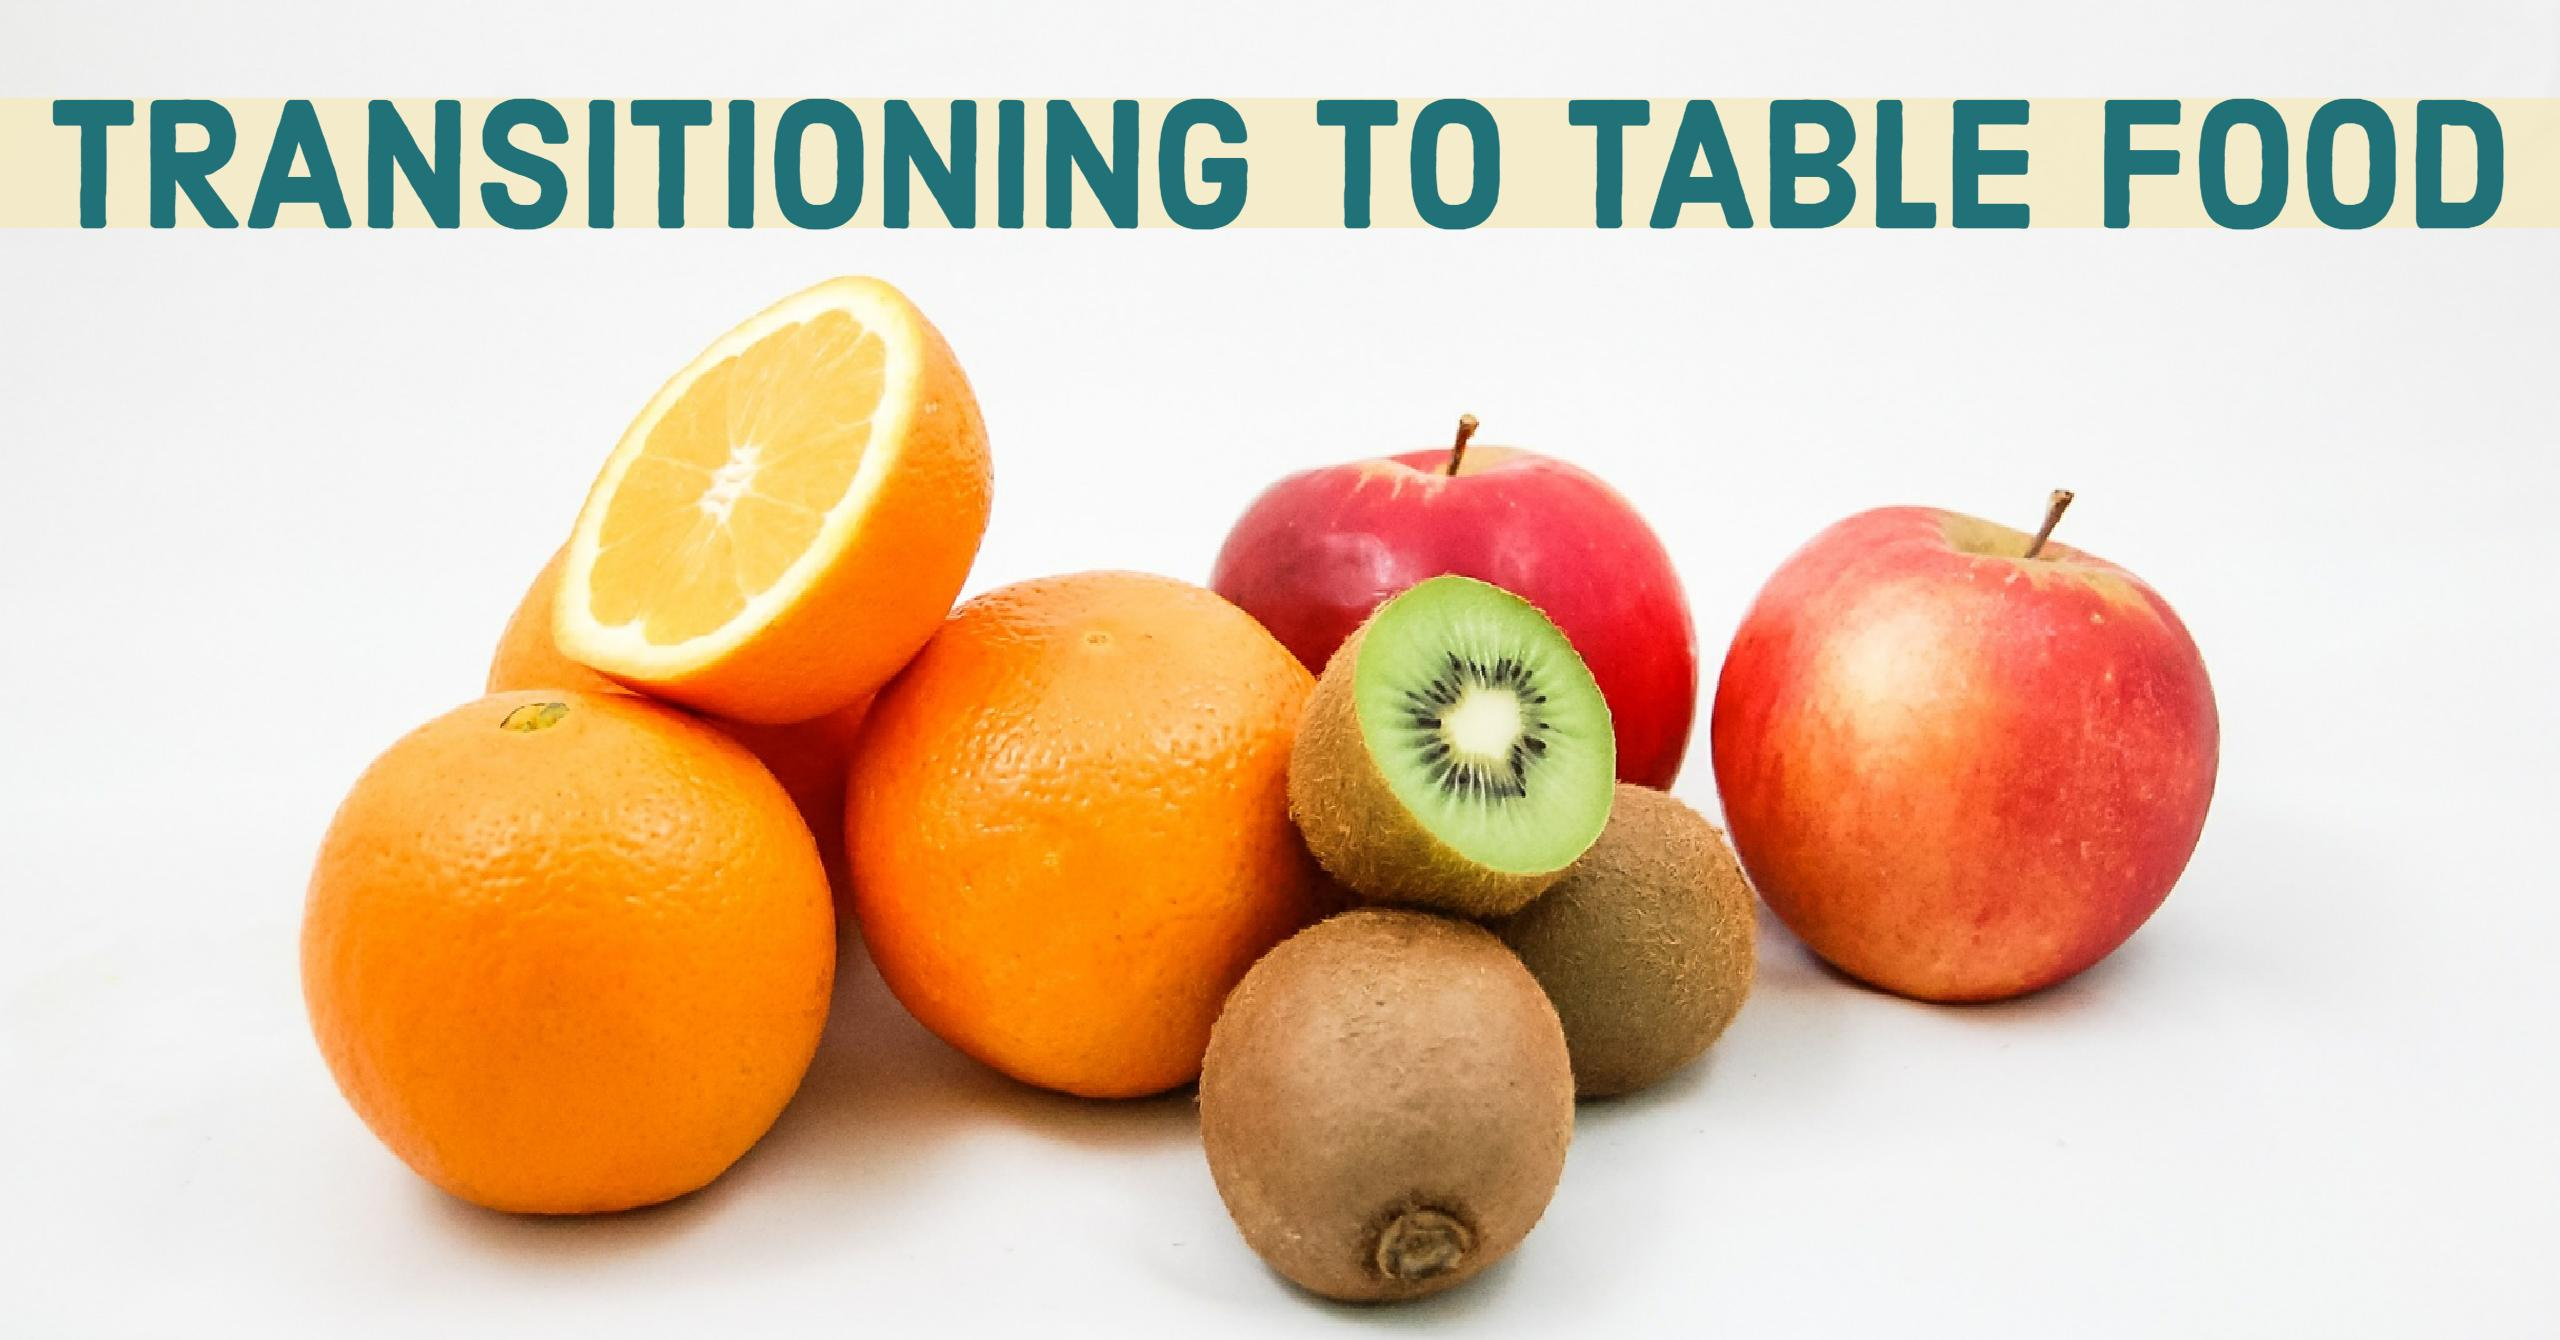 Transitioning to Table Food